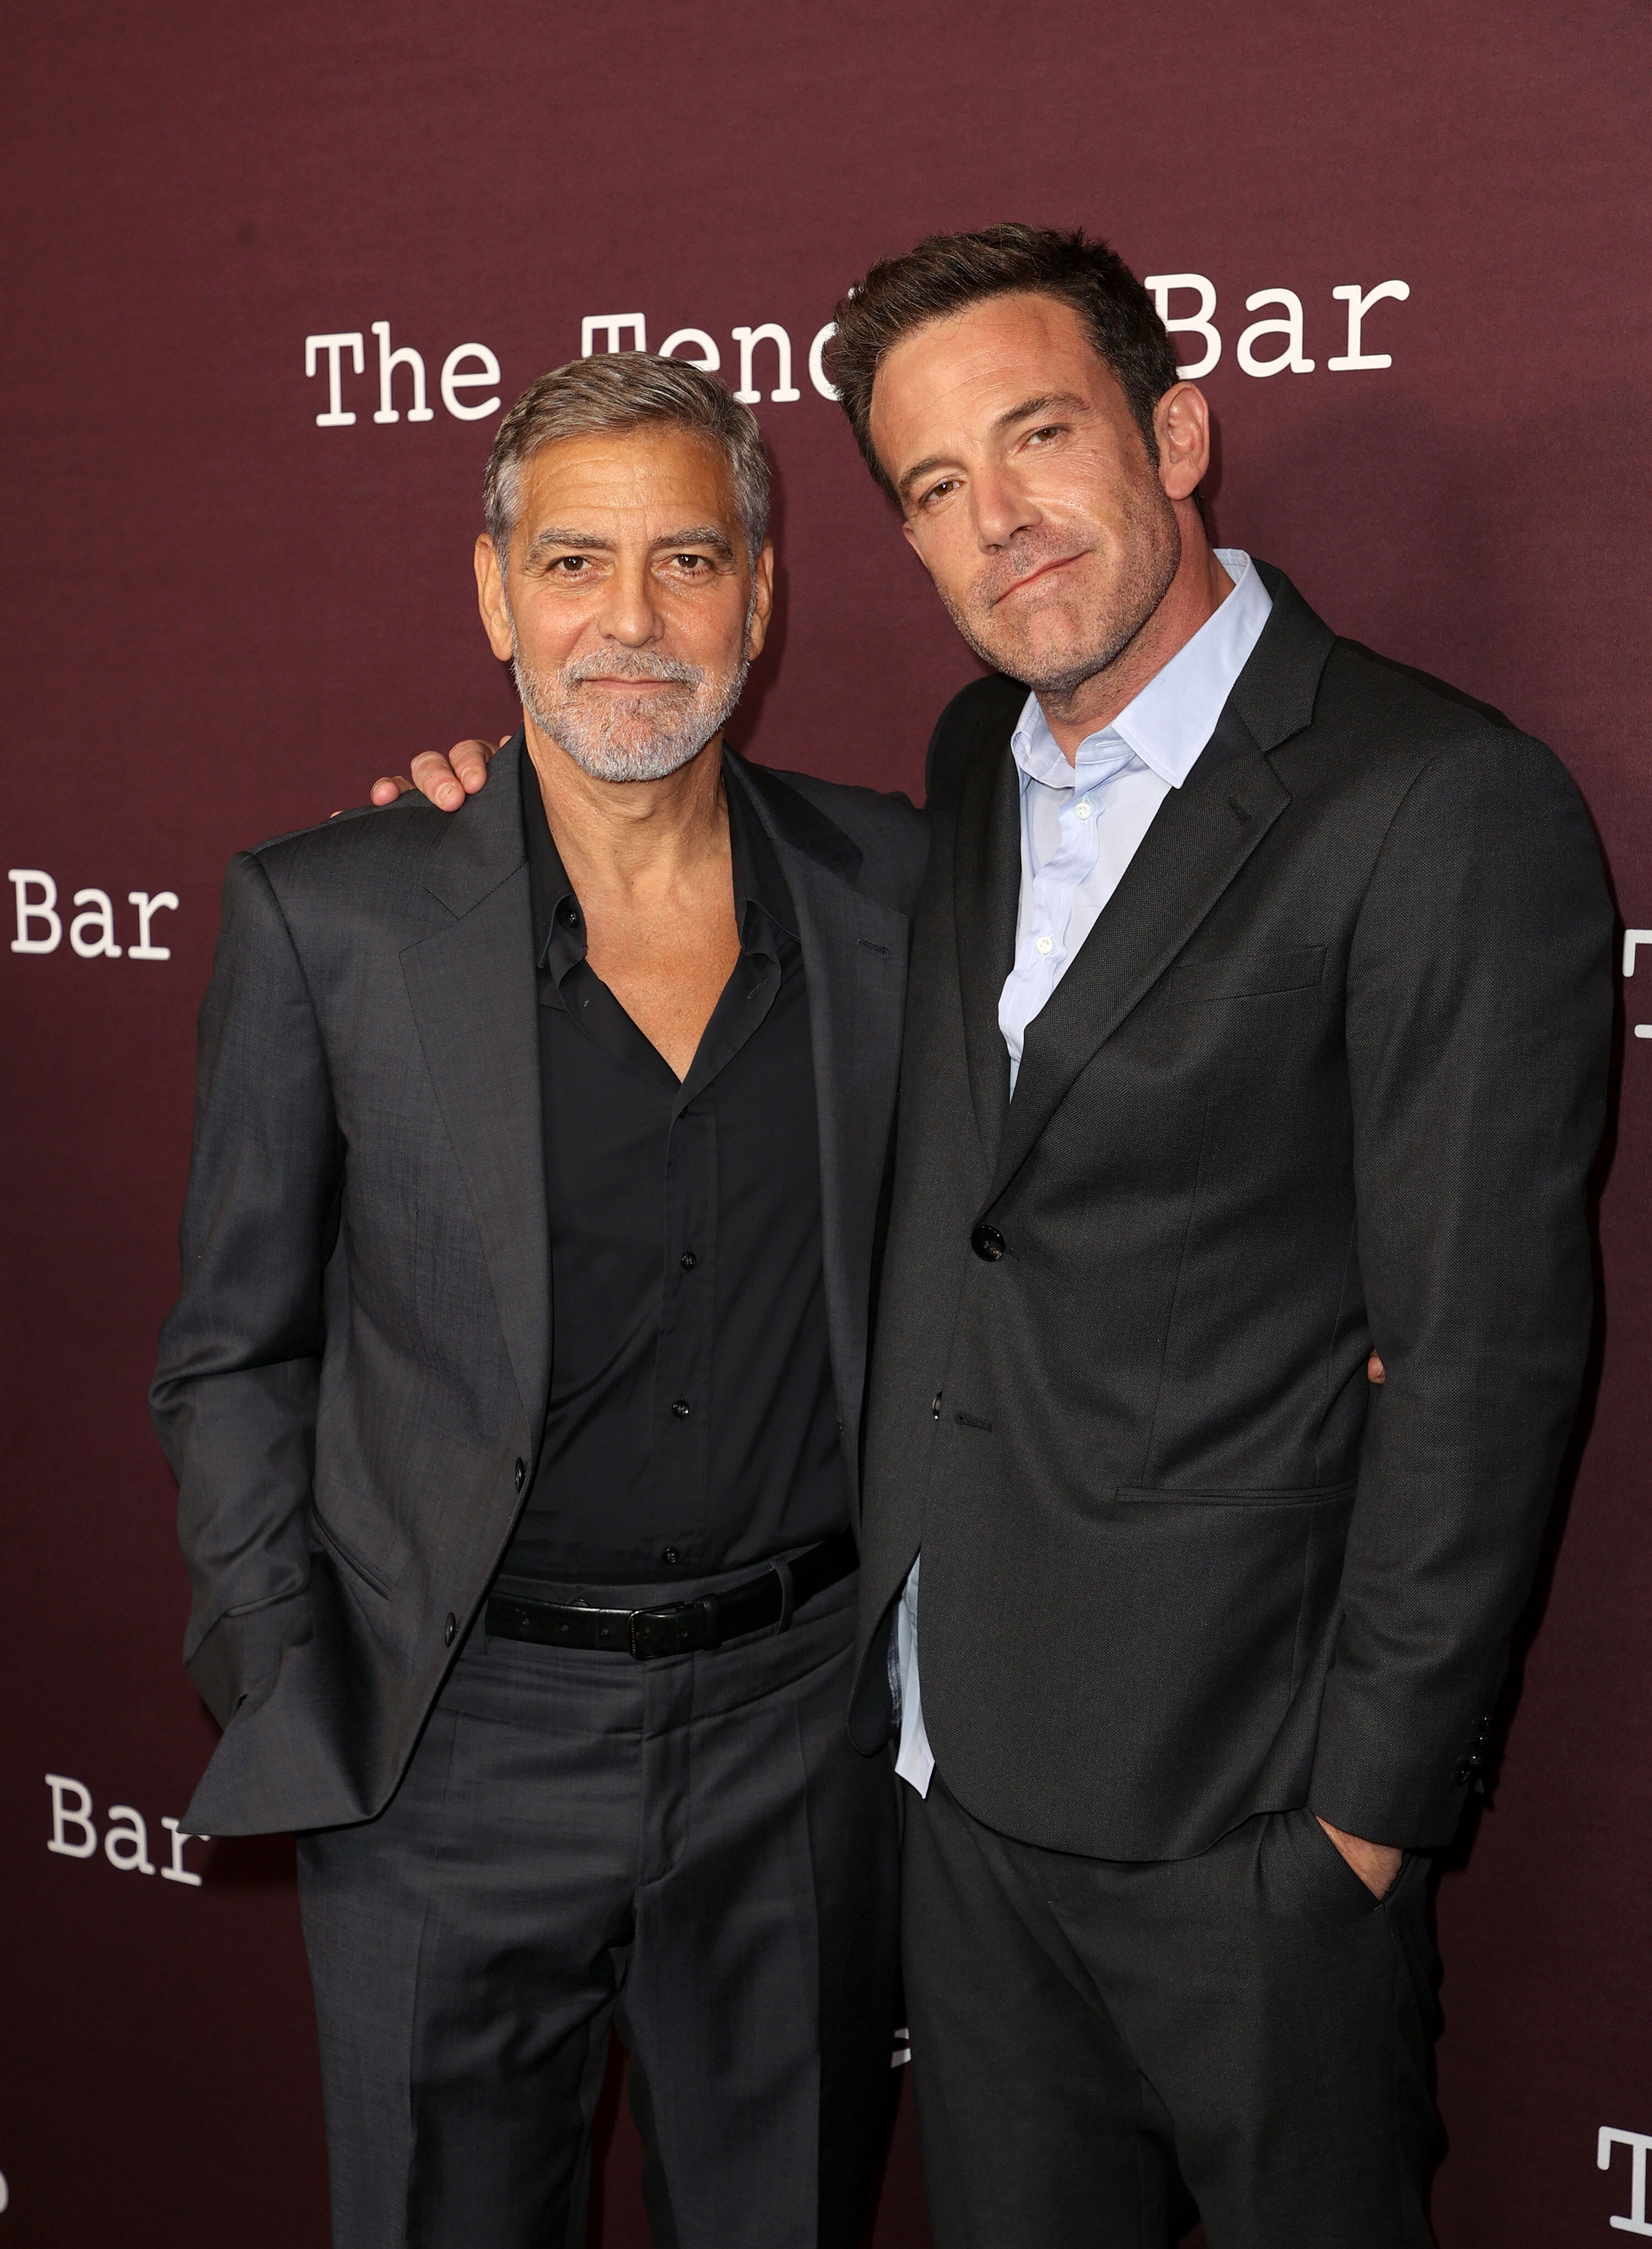 George Clooney jokes he's too short to share the screen with Ben Affleck